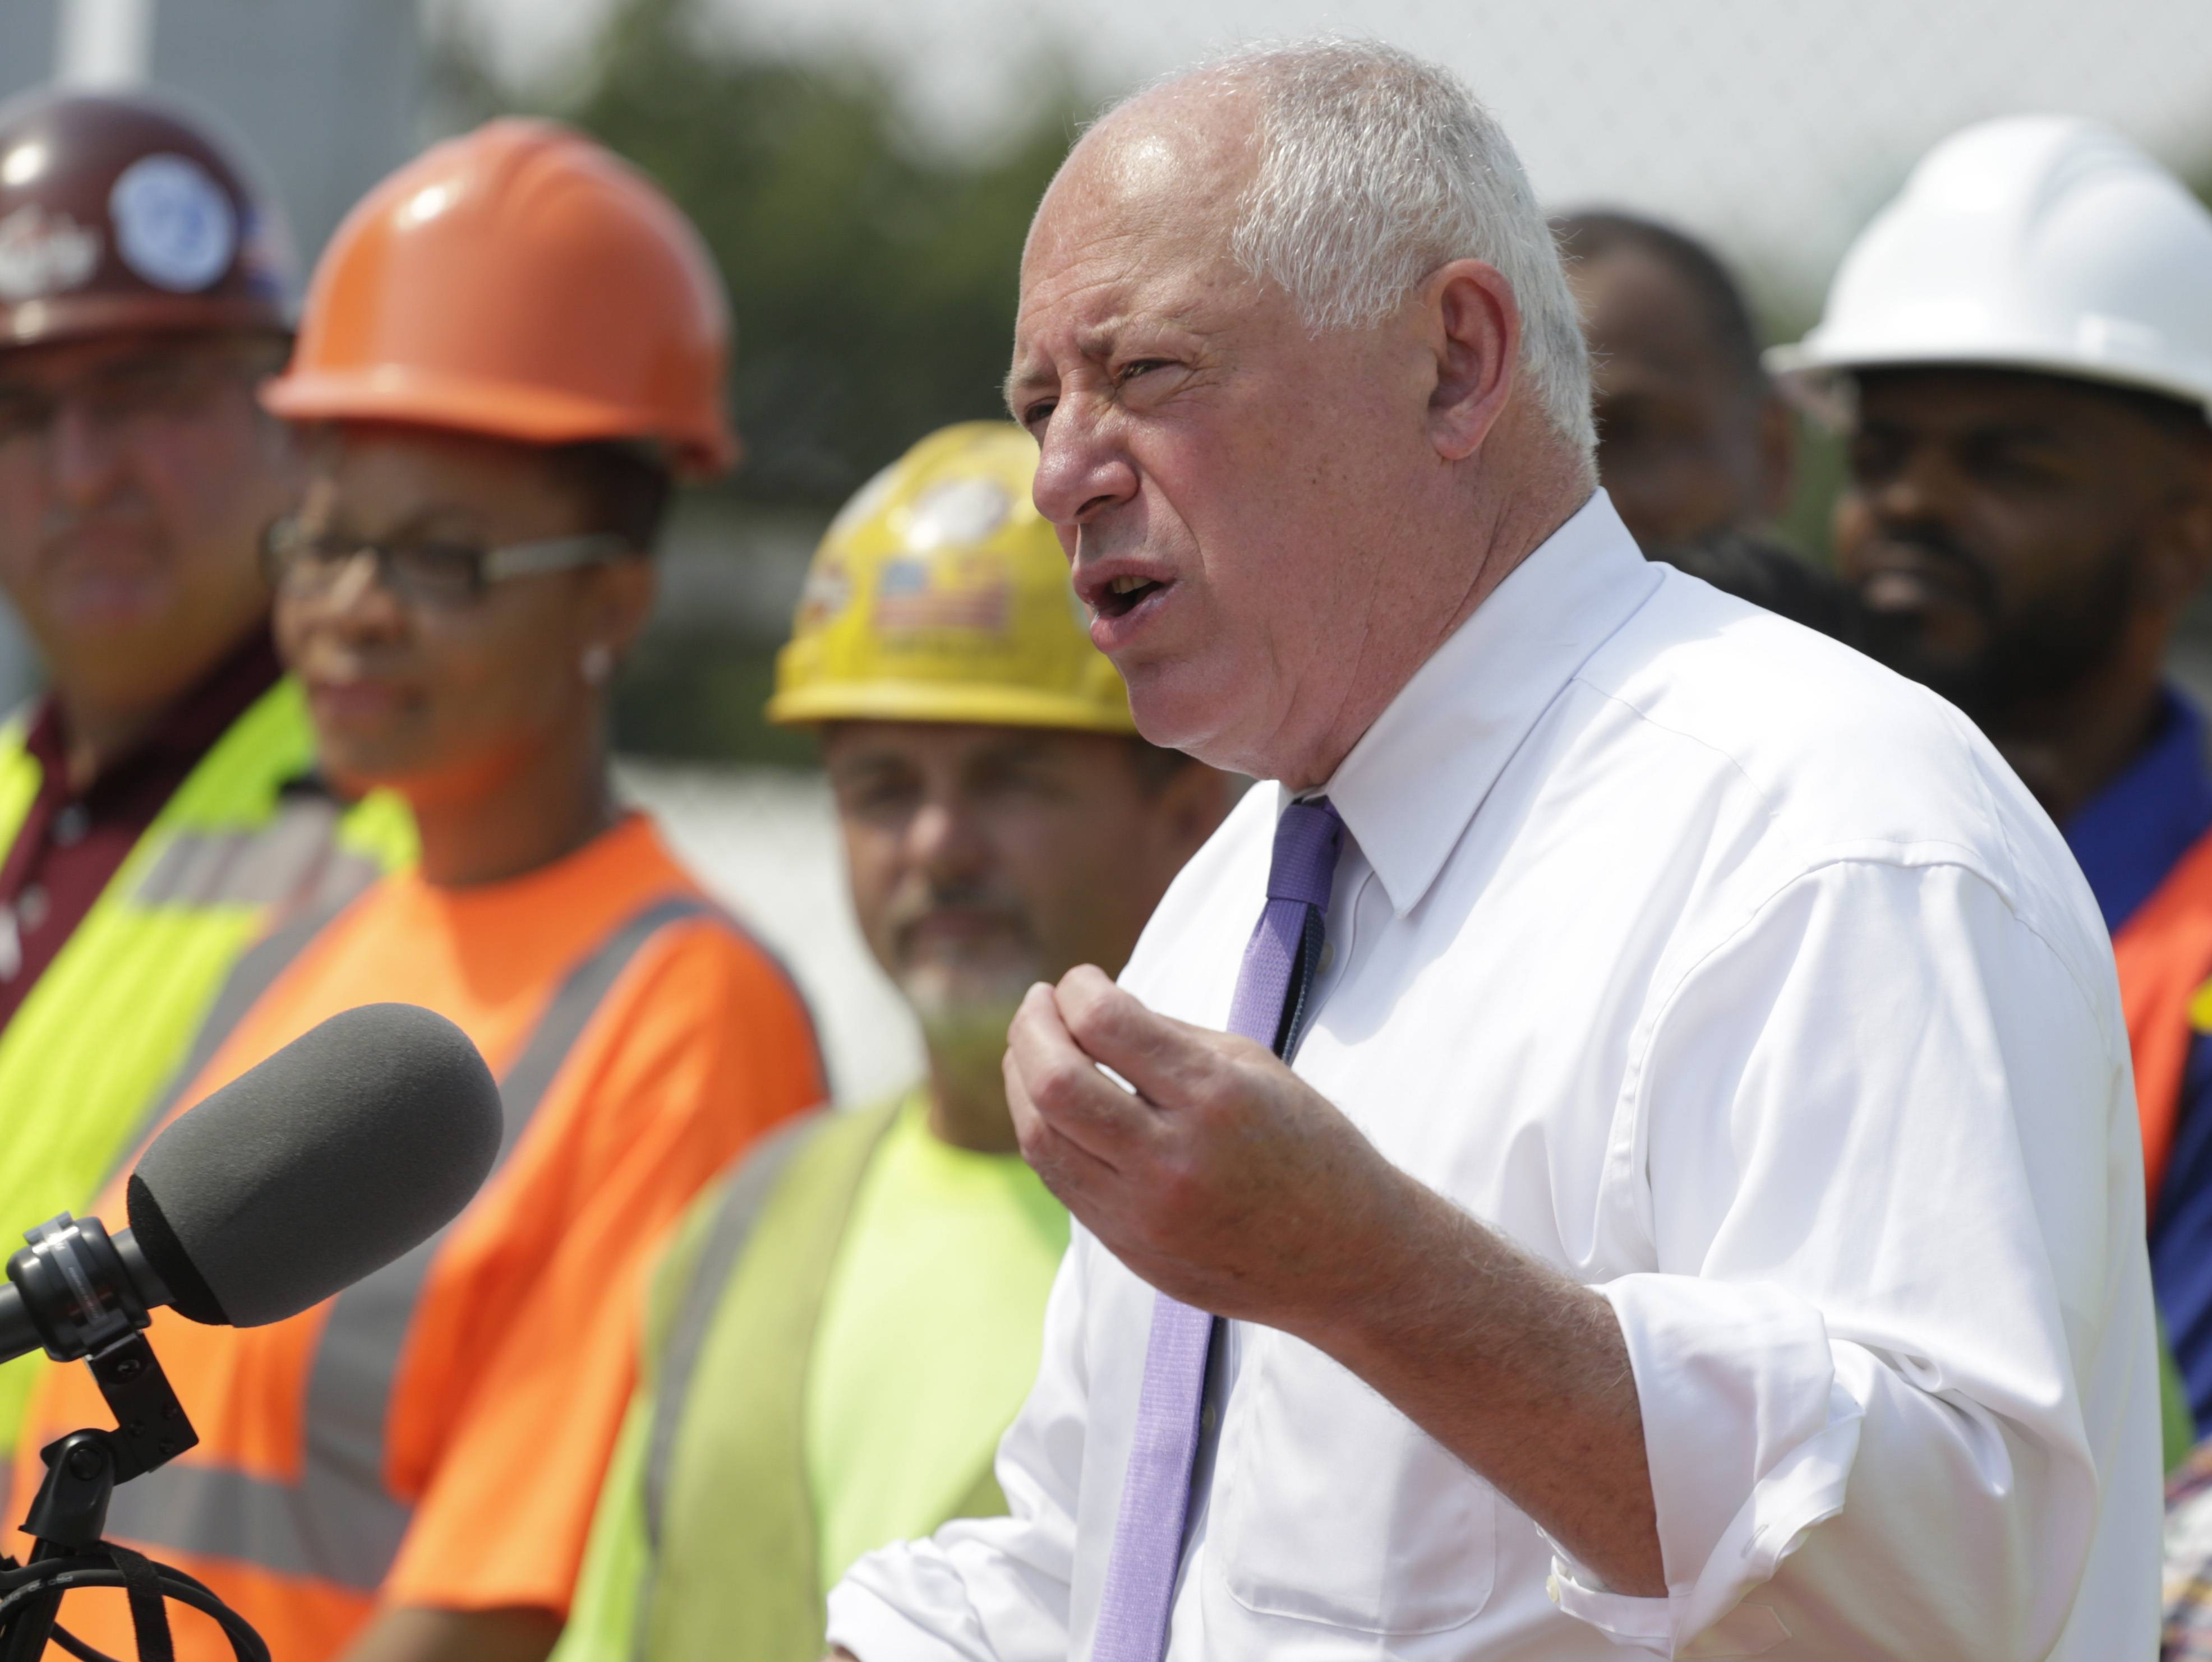 "In this July 22, 2014, photo in Chicago, Illinois Gov. Pat Quinn, surrounded by workers, speaks during a bill signing ceremony. The candidates for Illinois governor have ridiculed each other's plans for the state budget in recent weeks, with Republican Bruce Rauner accusing Gov. Quinn of leading a ""tax-happy, fee-happy state,"" and the Chicago Democrat countering that Rauner's plan to cut taxes is a dishonest, ""flim flam approach"" that will leave an $8.5 billion budget hole. But a closer look at the state's books and the two candidates' plans shows both sides are playing a little fast and loose with the numbers. (AP Photo/M. Spencer Green)"